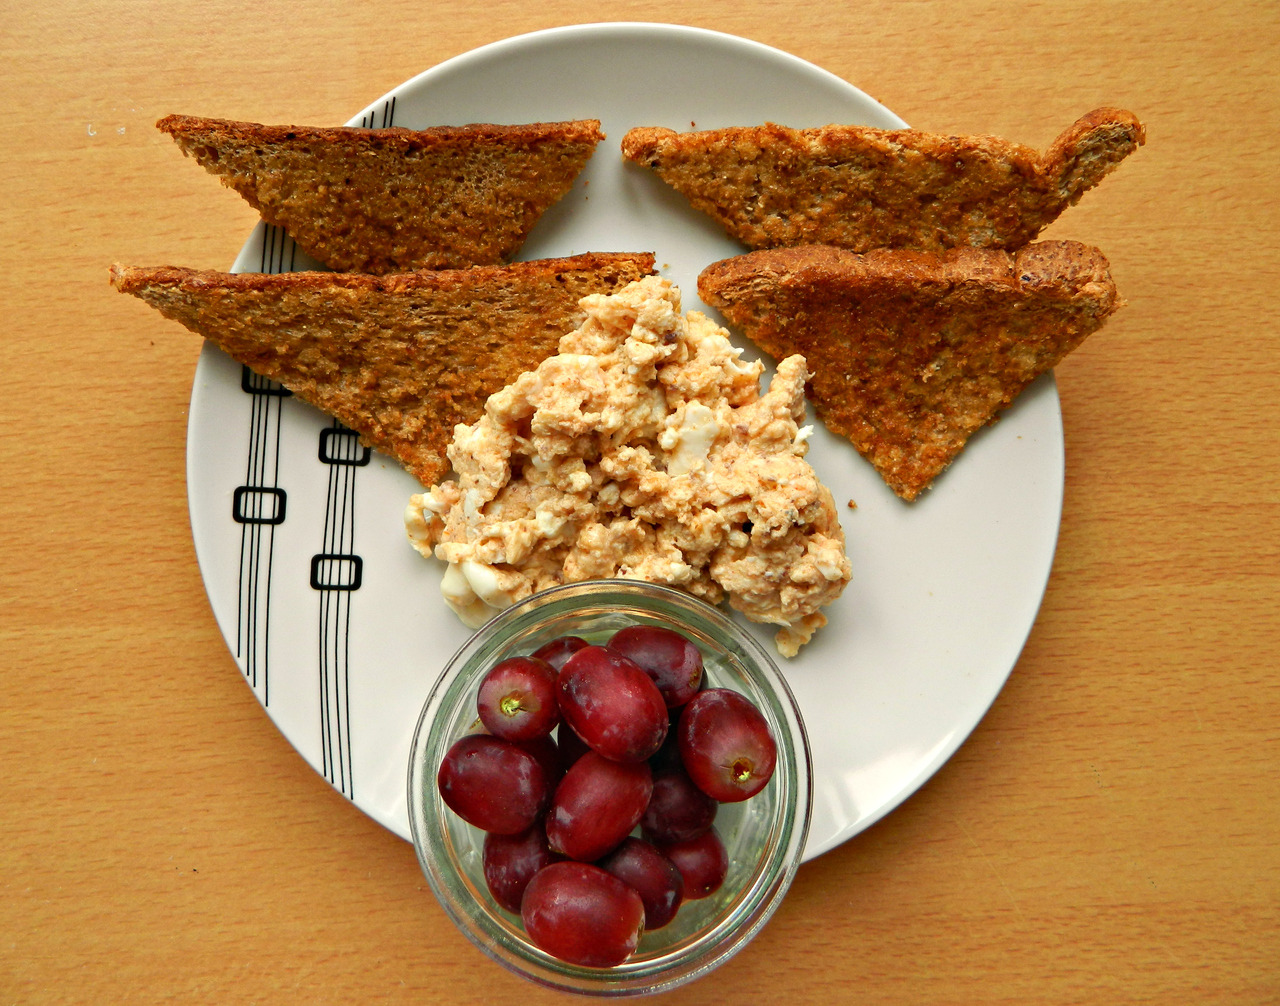 Breakfast - wholewheat toast with soya butter, Italian scrambled eggs and red grapes. (Eggs - 1 whole, 1 white, almond milk, tomato paste, balsamic vinegar, dried basil, paprika - cooked in coconut oil.)